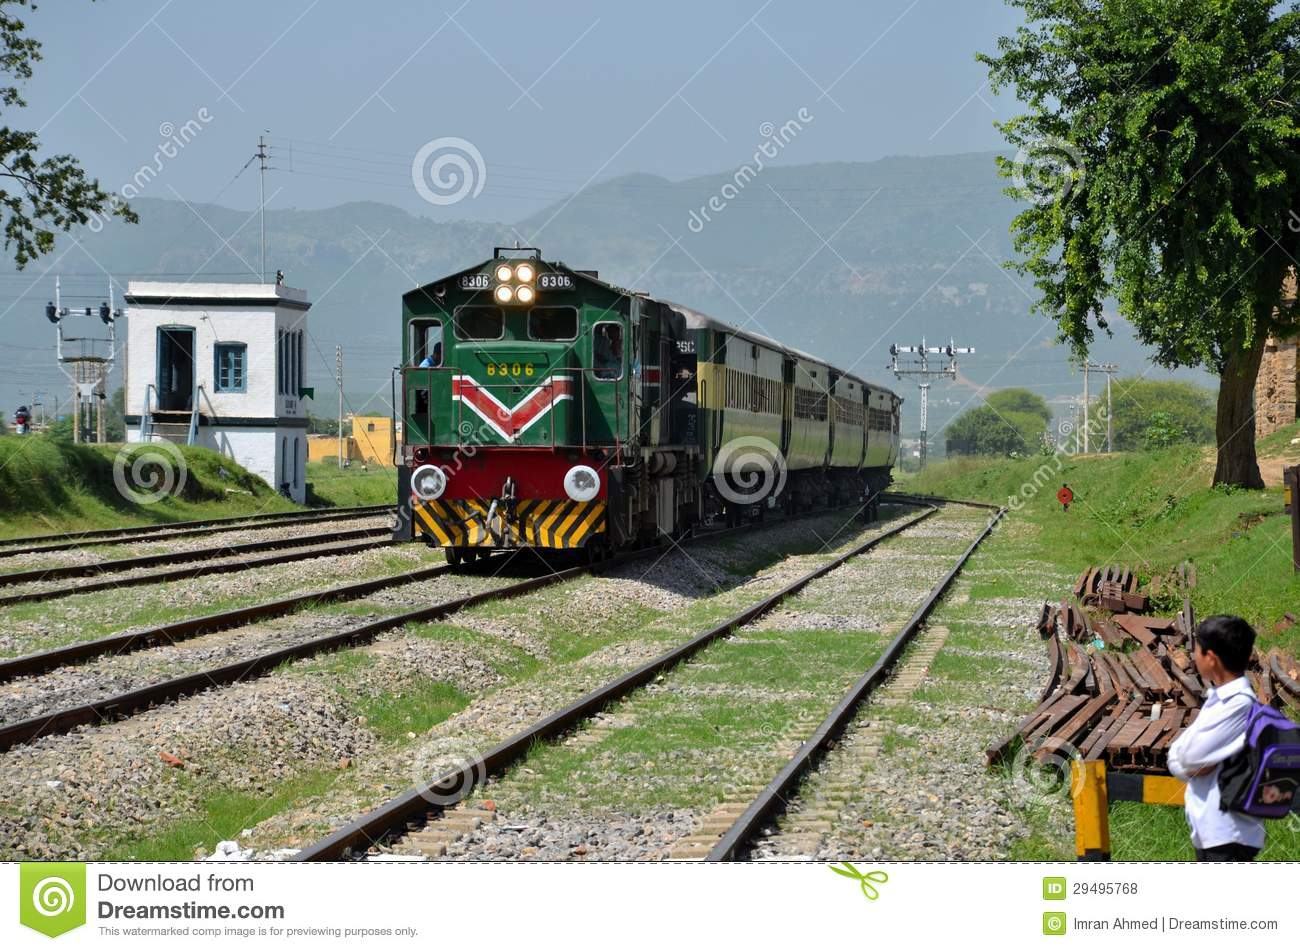 The Calgary St ede An Insiders Guide in addition Yamaha Waverunner Wont Start Stalls furthermore Pakistan Railways Train Shalimar Express Stops Rohri Junction Station Sindh additionally Cat Street Antique Markets Hong Kong besides Index176. on engine stalls